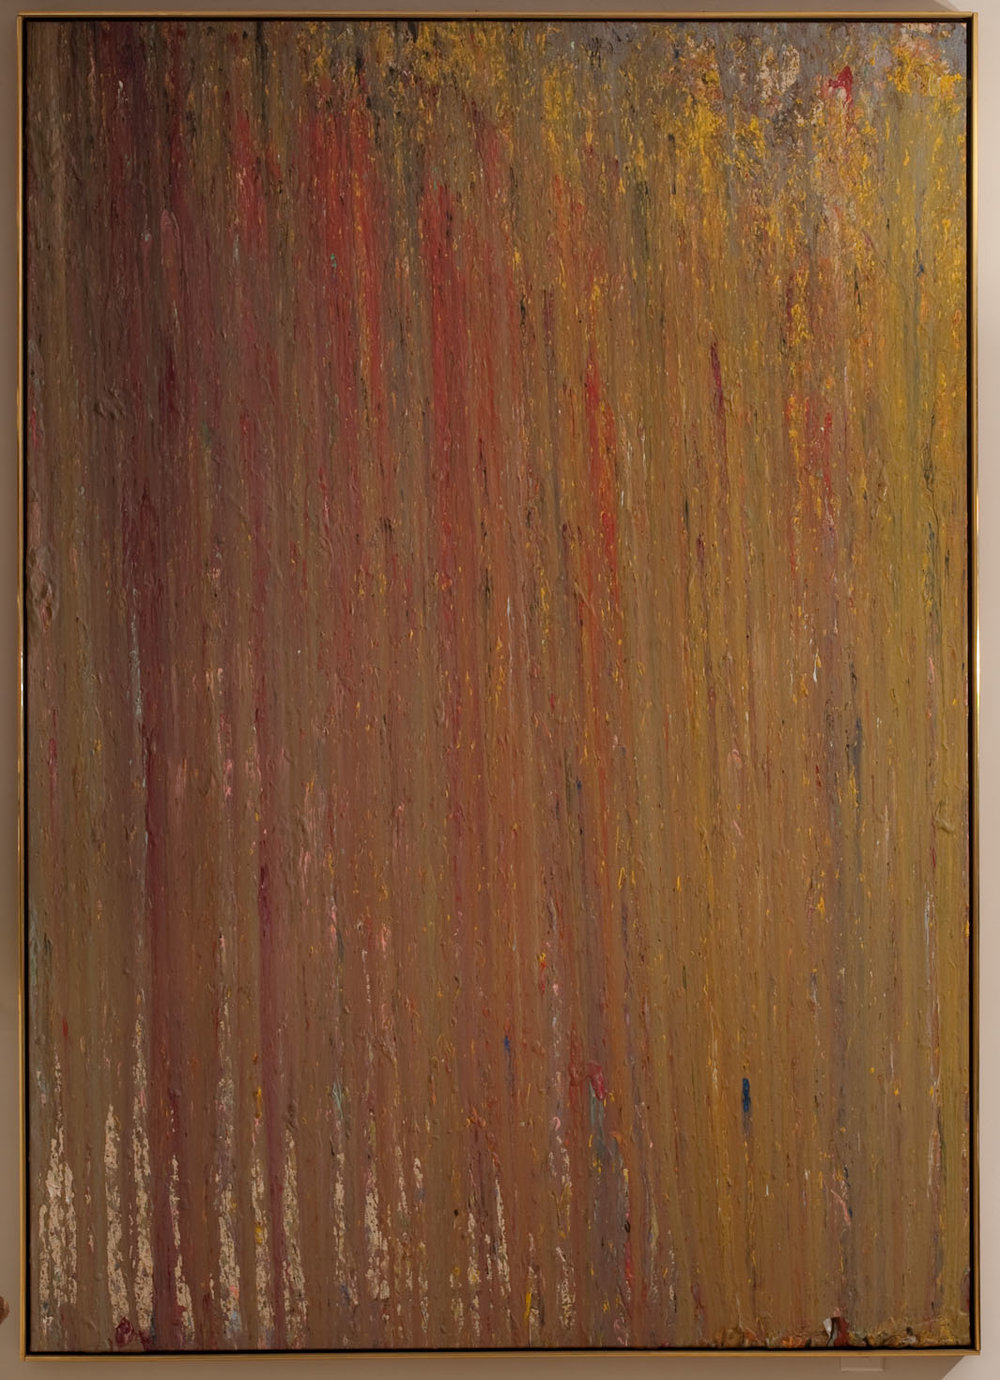 Larry Poons   Untitled , 1974 acrylic on canvas 81 1/2 x 57 1/2 inches (207 x 146 cm)